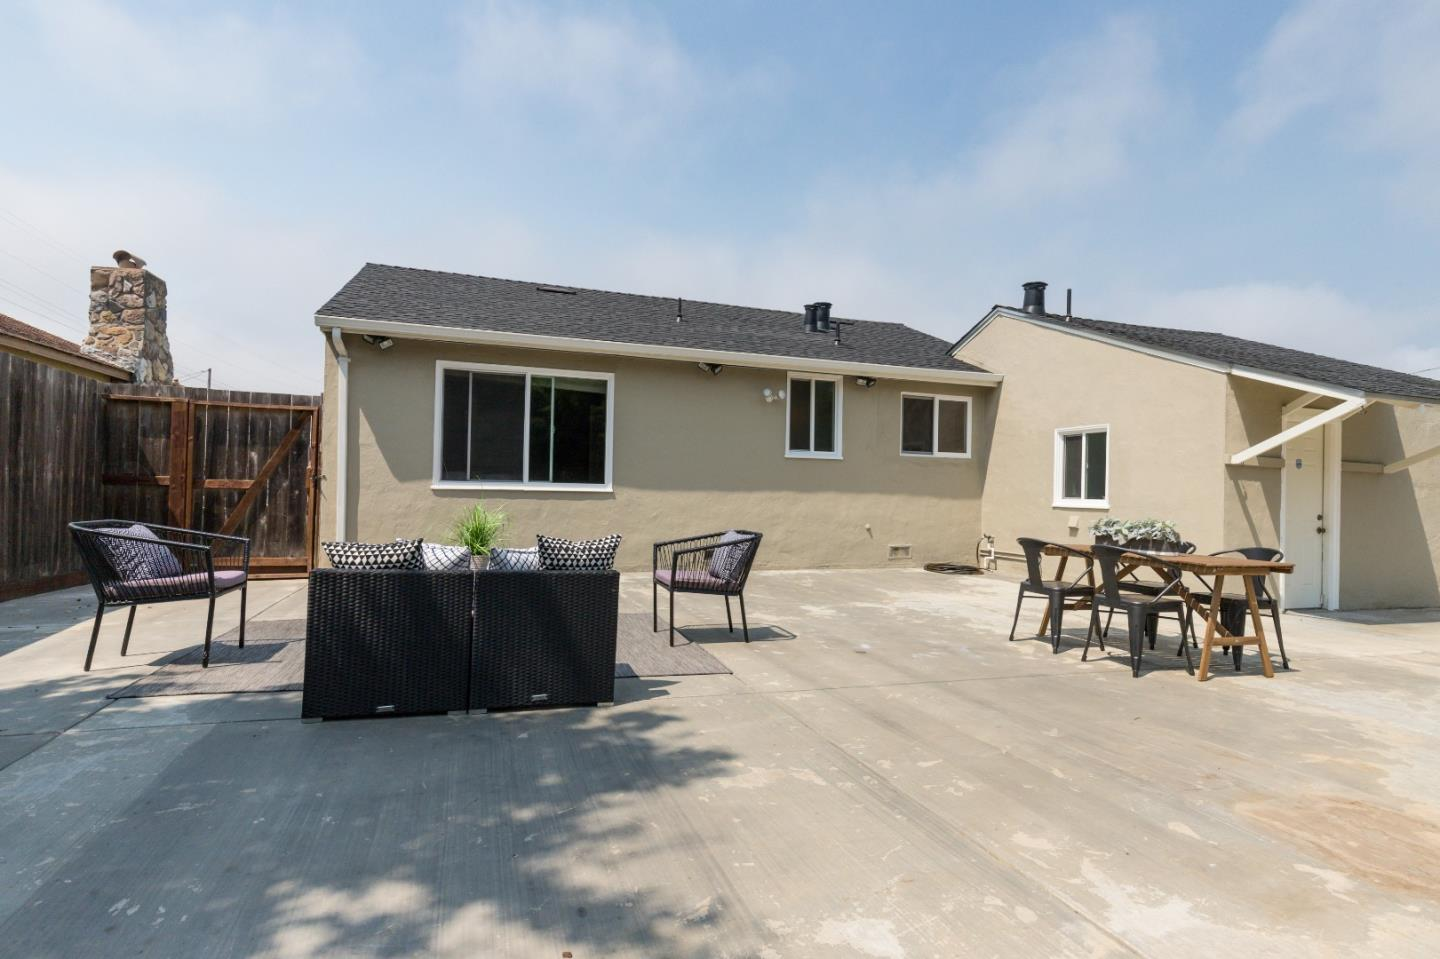 303 Rockwood Drive South San Francisco, CA 94080 - MLS #: ML81718359